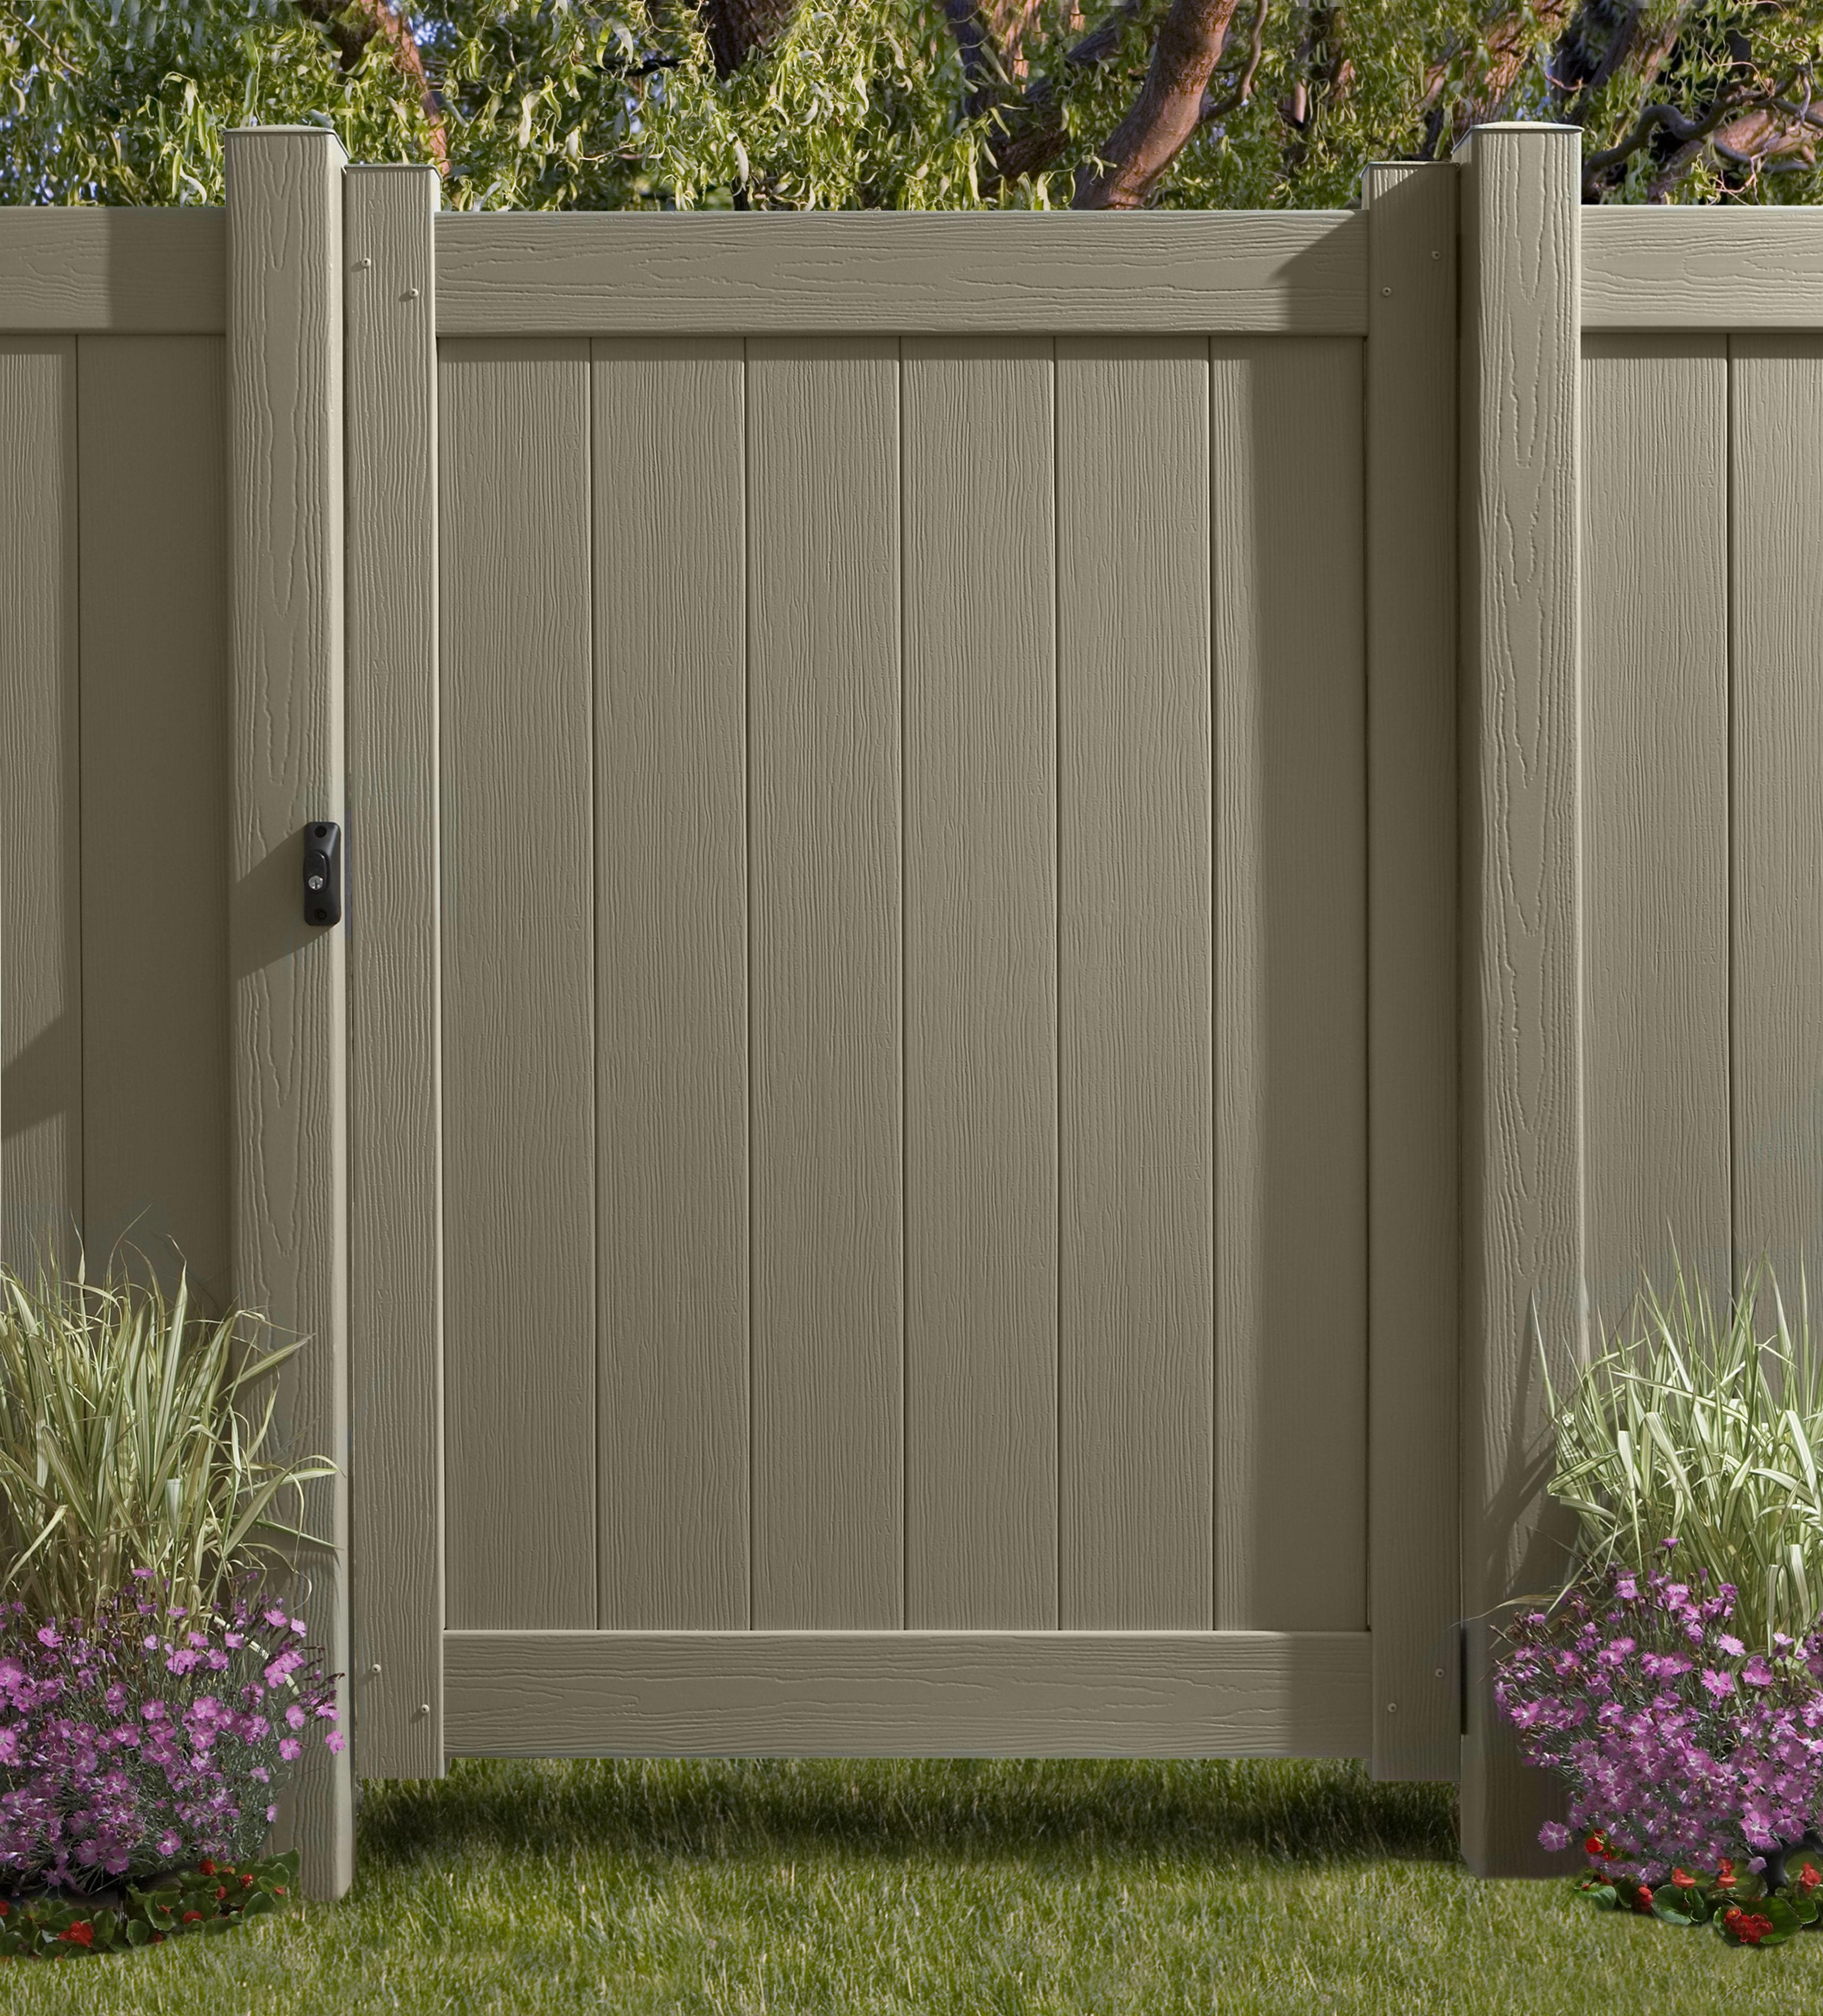 Vinyl privacy fence vinyl fences chesterfield certagrain vinyl vinyl fence gates privacy fence gates horse fence gates pool fence gates shipped and priced factory direct baanklon Image collections